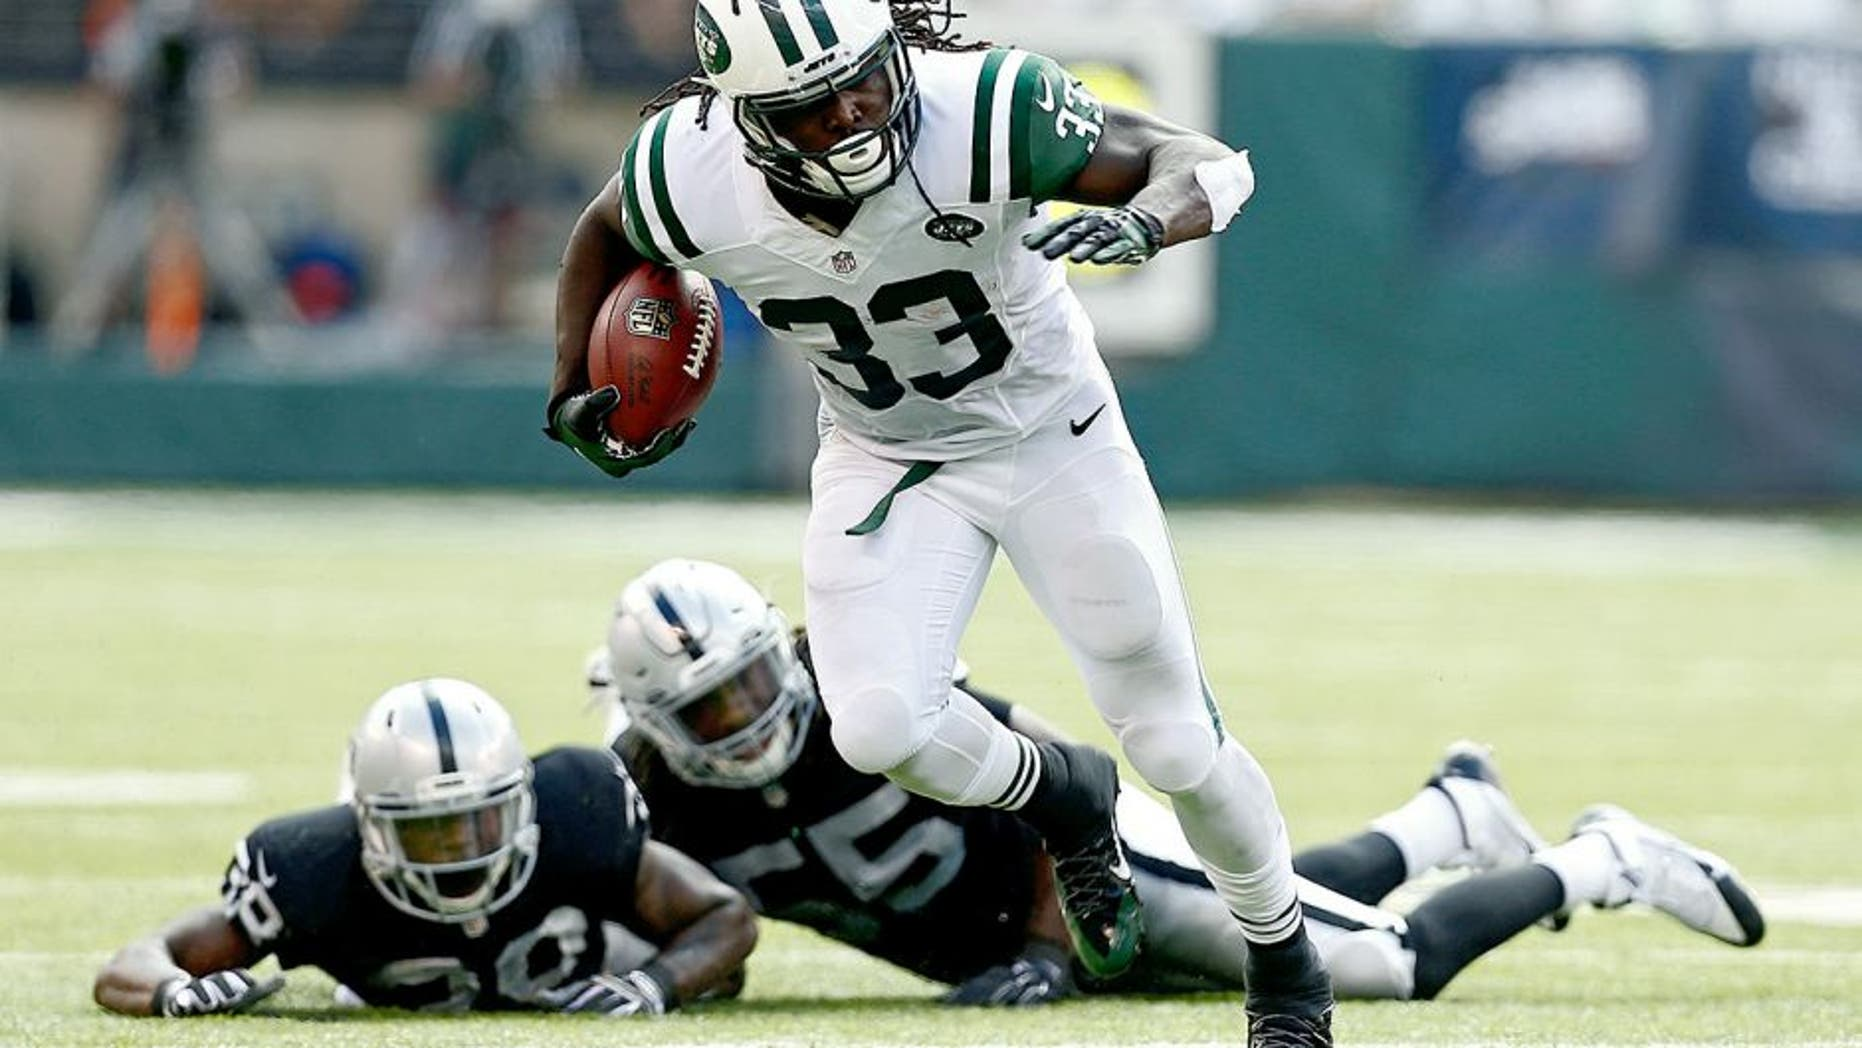 EAST RUTHERFORD, NJ - SEPTEMBER 07: Chris Ivory #33 of the New York Jets rushes after evading tackle attempts by T.J. Carrie #38 and Sio Moore #55 of the Oakland Raiders during the third quarter of a game at MetLife Stadium on September 7, 2014 in East Rutherford, New Jersey. (Photo by Jeff Zelevansky/Getty Images)